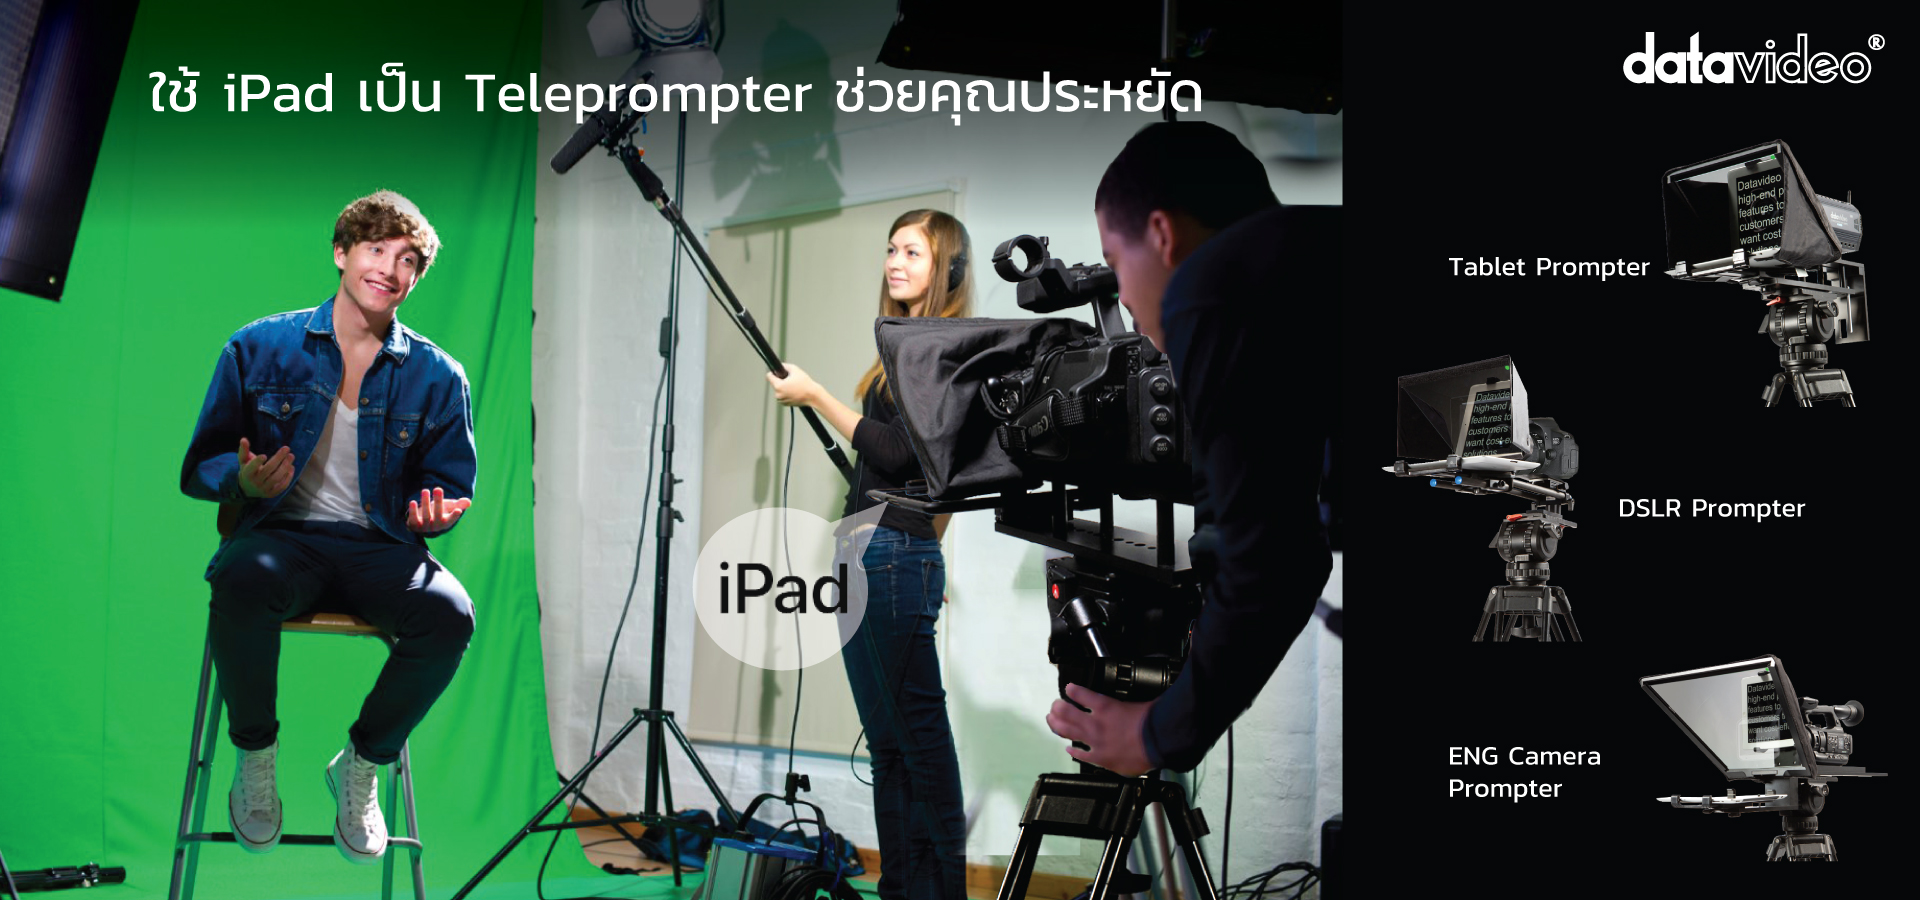 teleprompter-md2.jpg